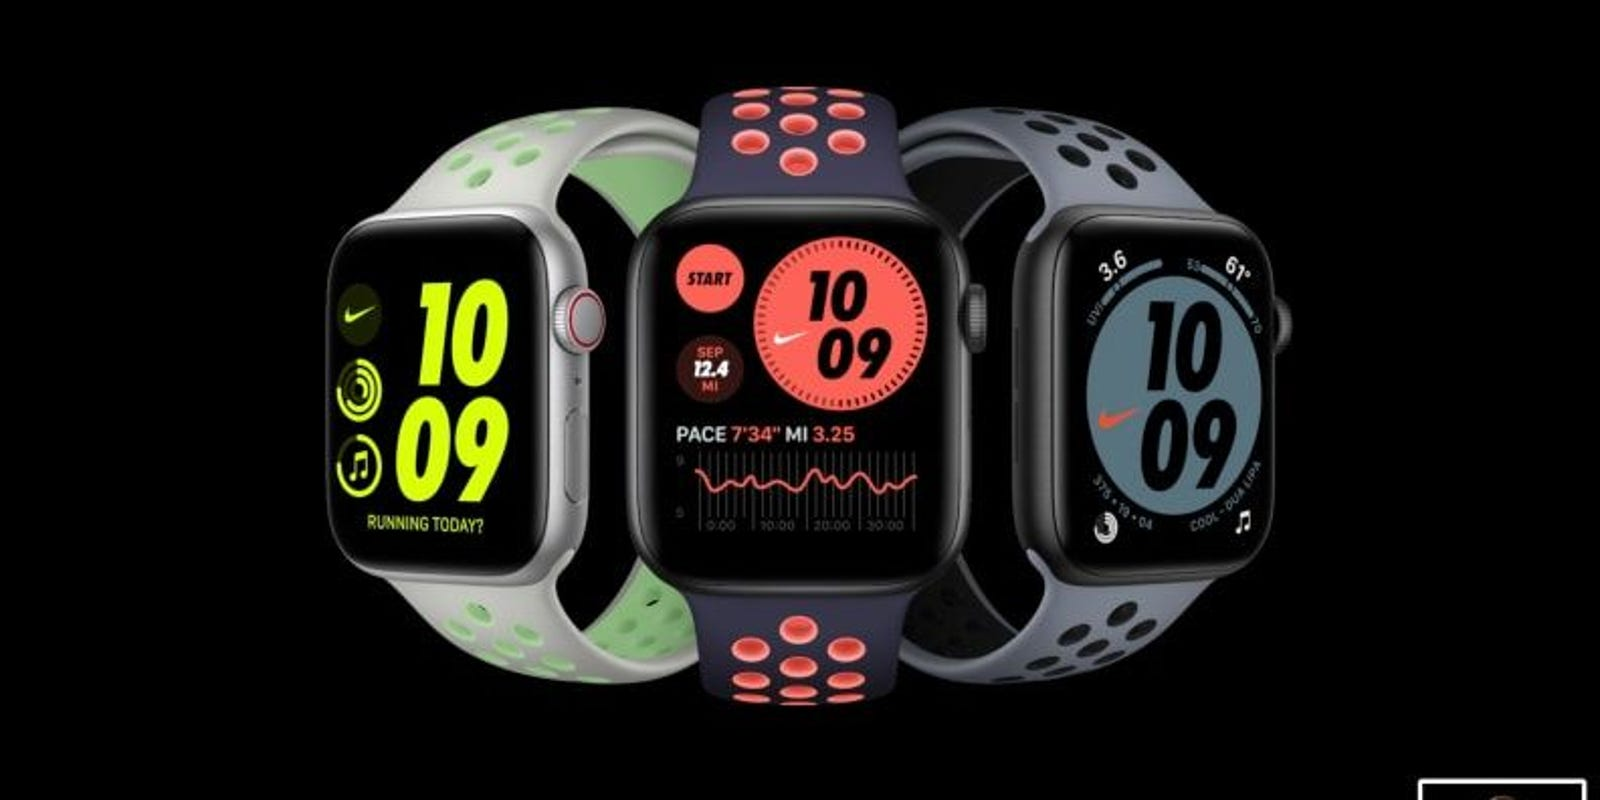 How Series 3, SE and new Series 6 compare